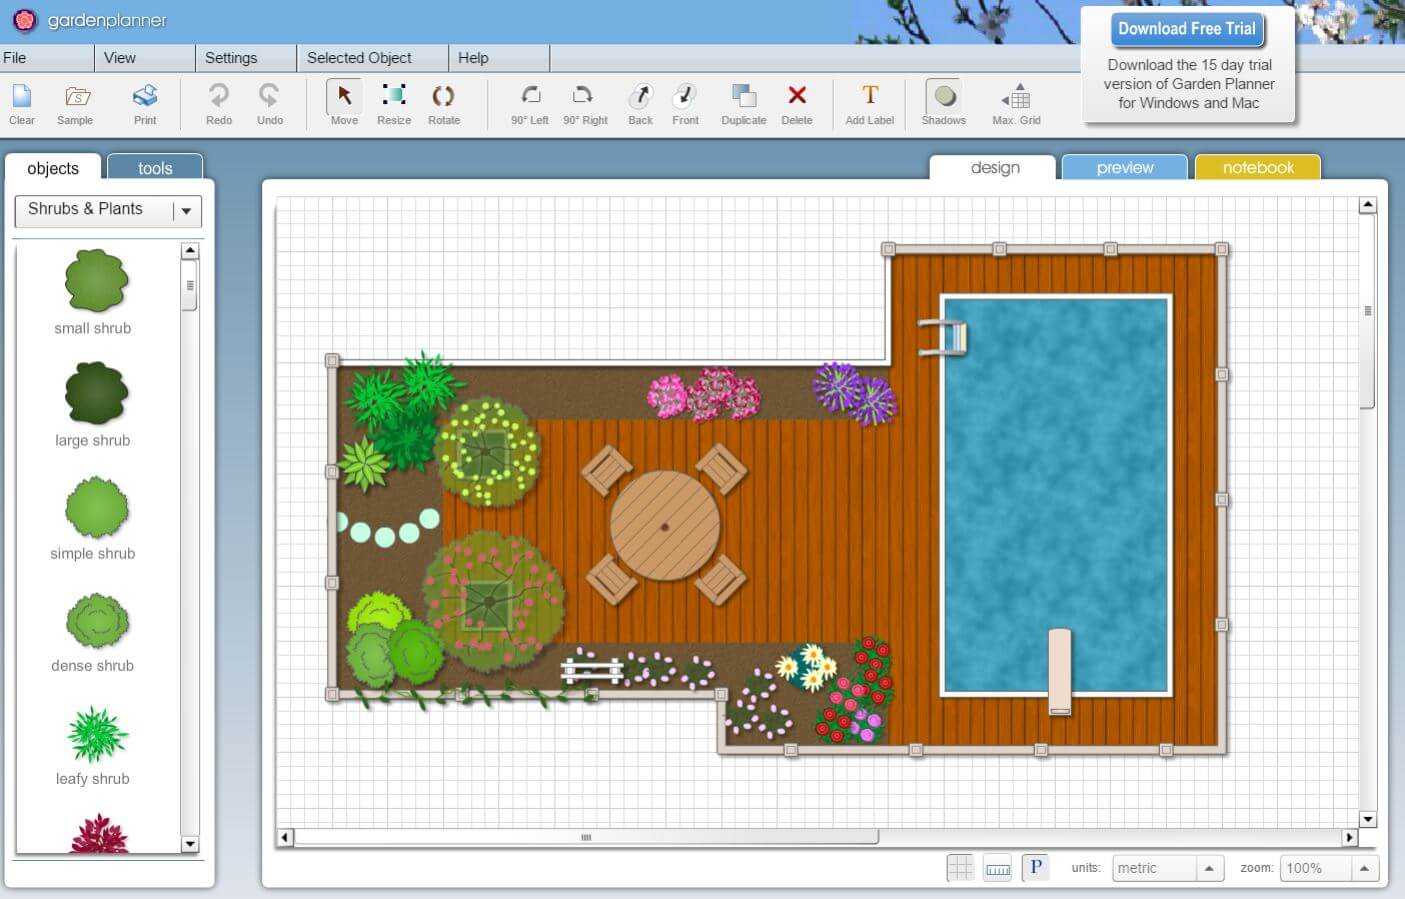 A Clean And Simple Design, This Garden Software Program Comes With Multiple  Pre Planned Options Or The Classic DIY. A Large Variety Of Flowers And  Shrubs ...